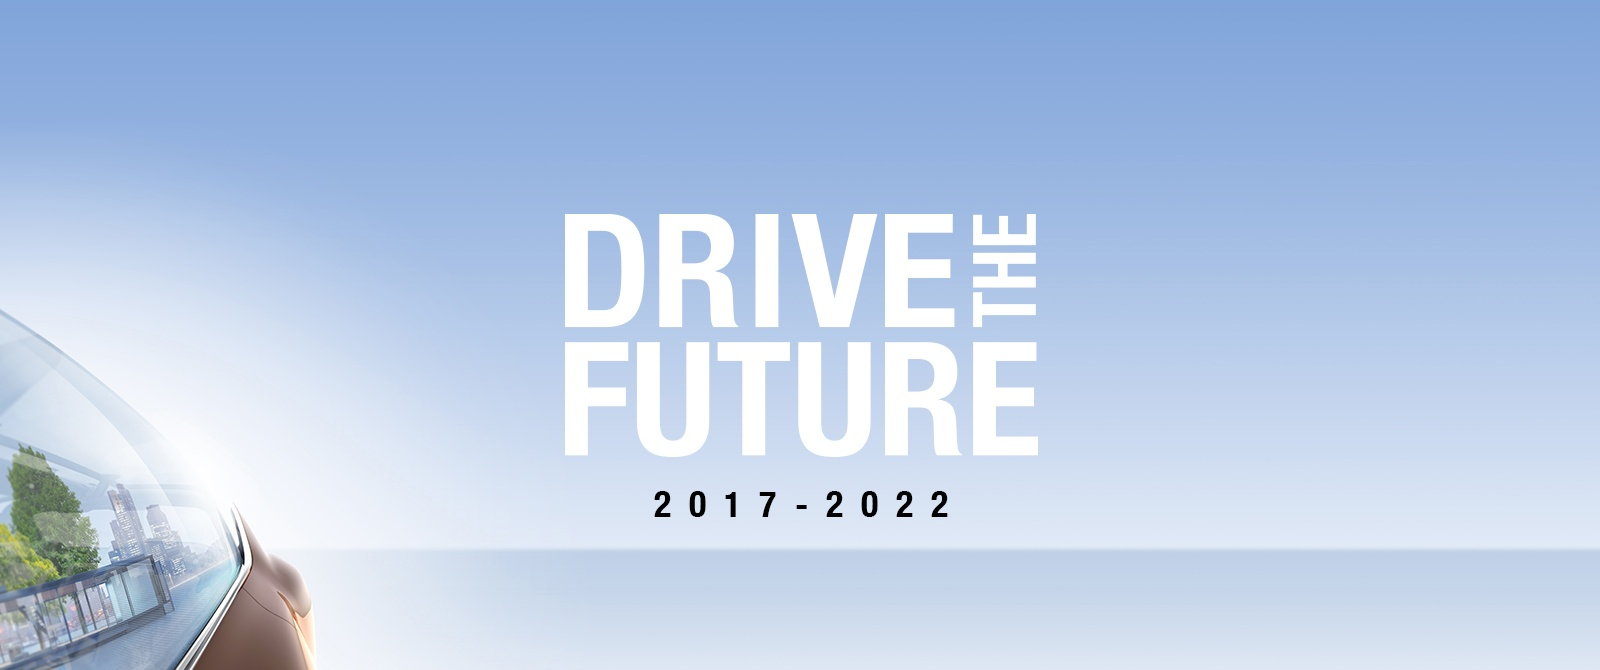 renault_drive_the_future_zoldautok